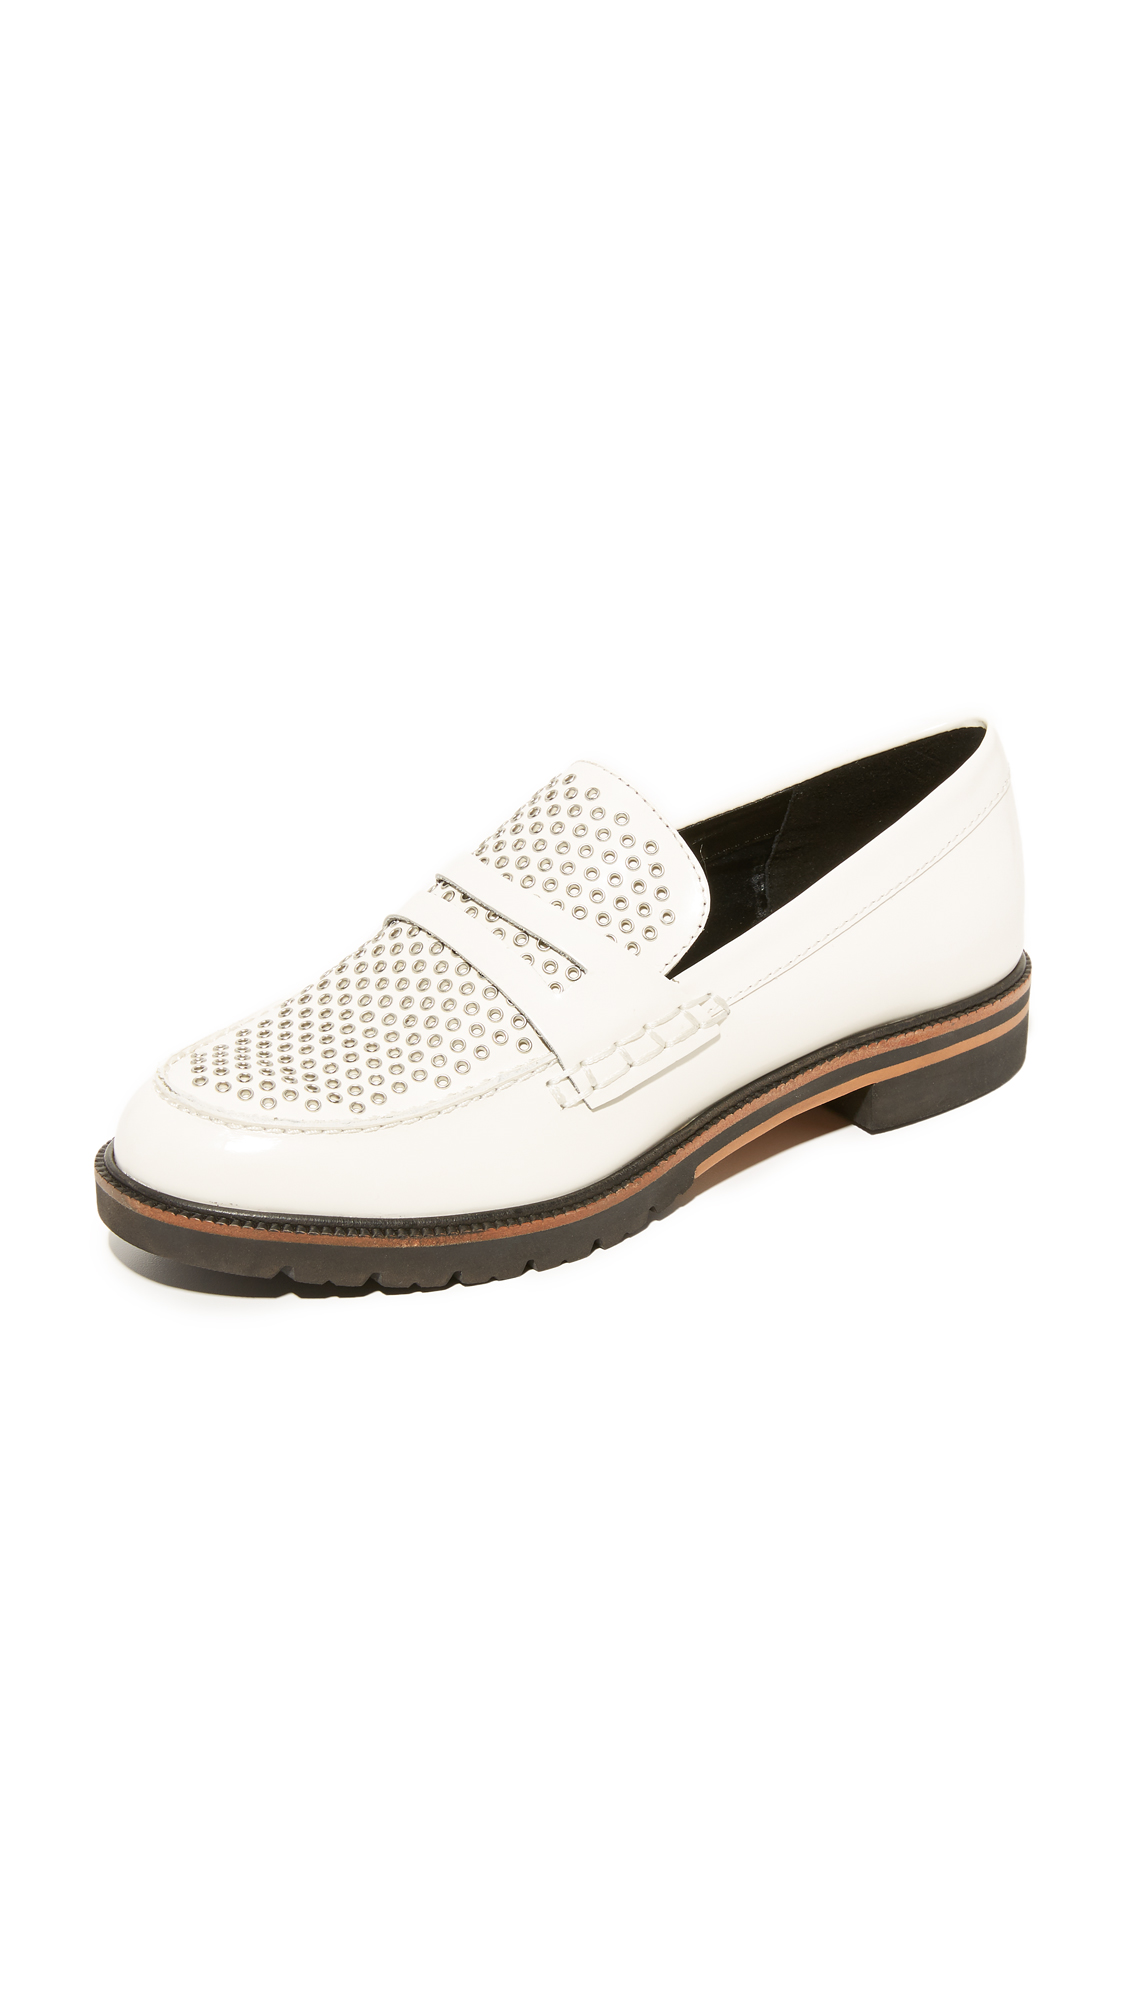 Dolce Vita Aidan Loafers - Off White at Shopbop